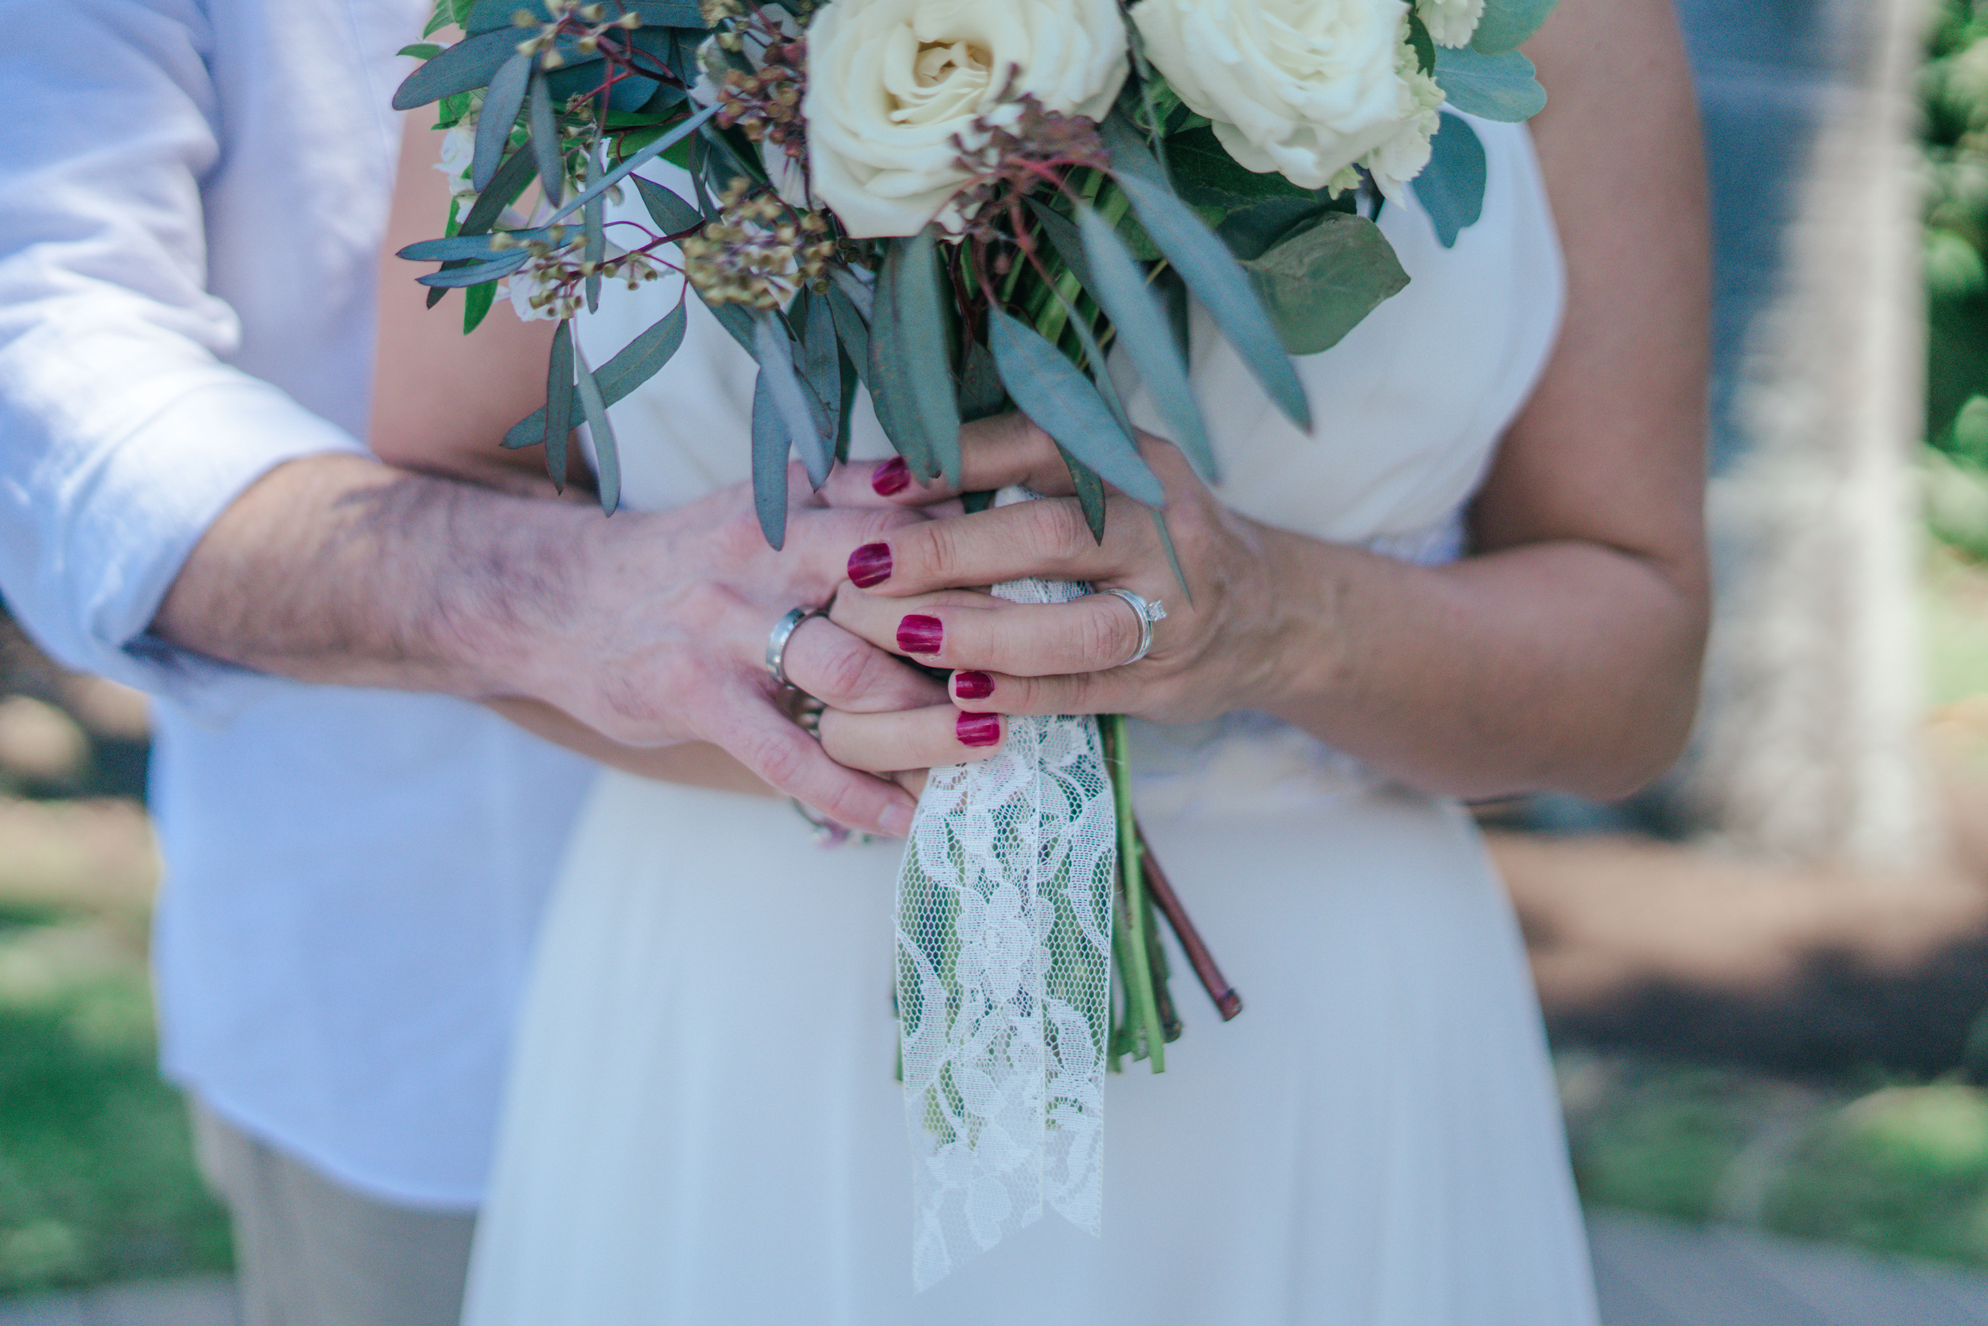 imagen obtenida via: https://www.pexels.com/photo/woman-holding-white-bouquet-1067563/